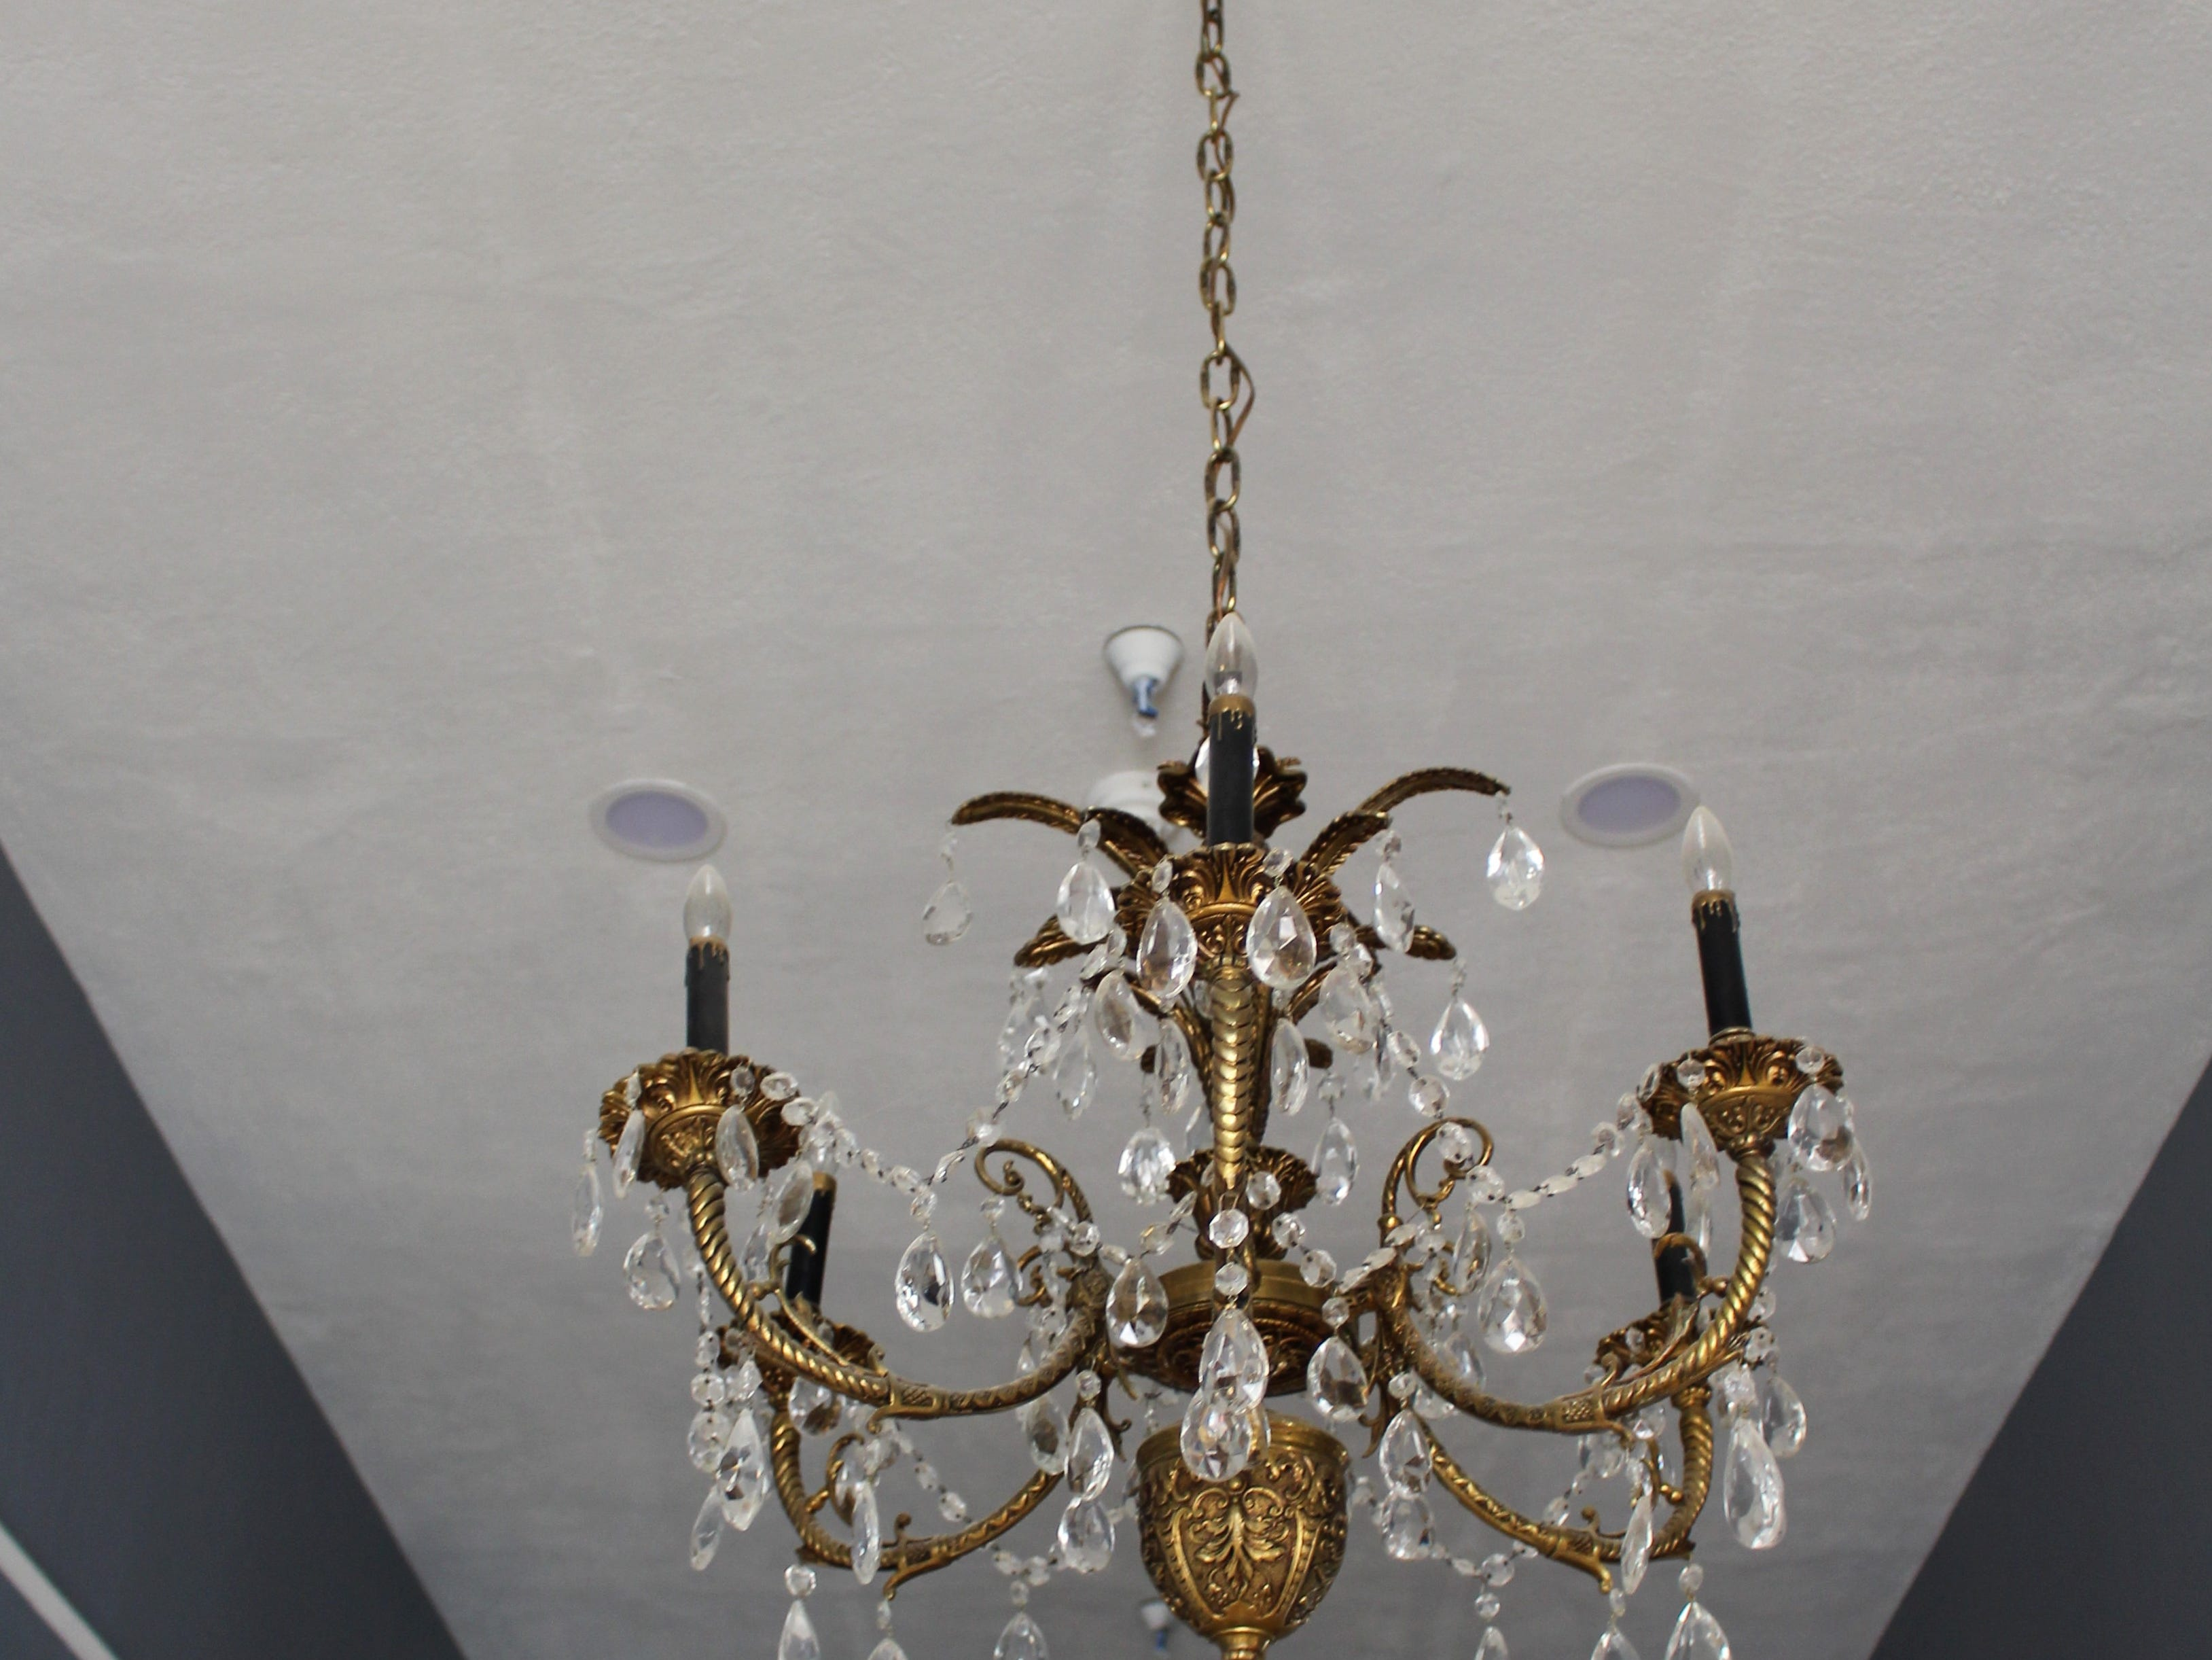 Hidden Kitchen chef and owner Ivan Jacobo picked out this chandelier for his first restaurant even before the lease for the building was signed.